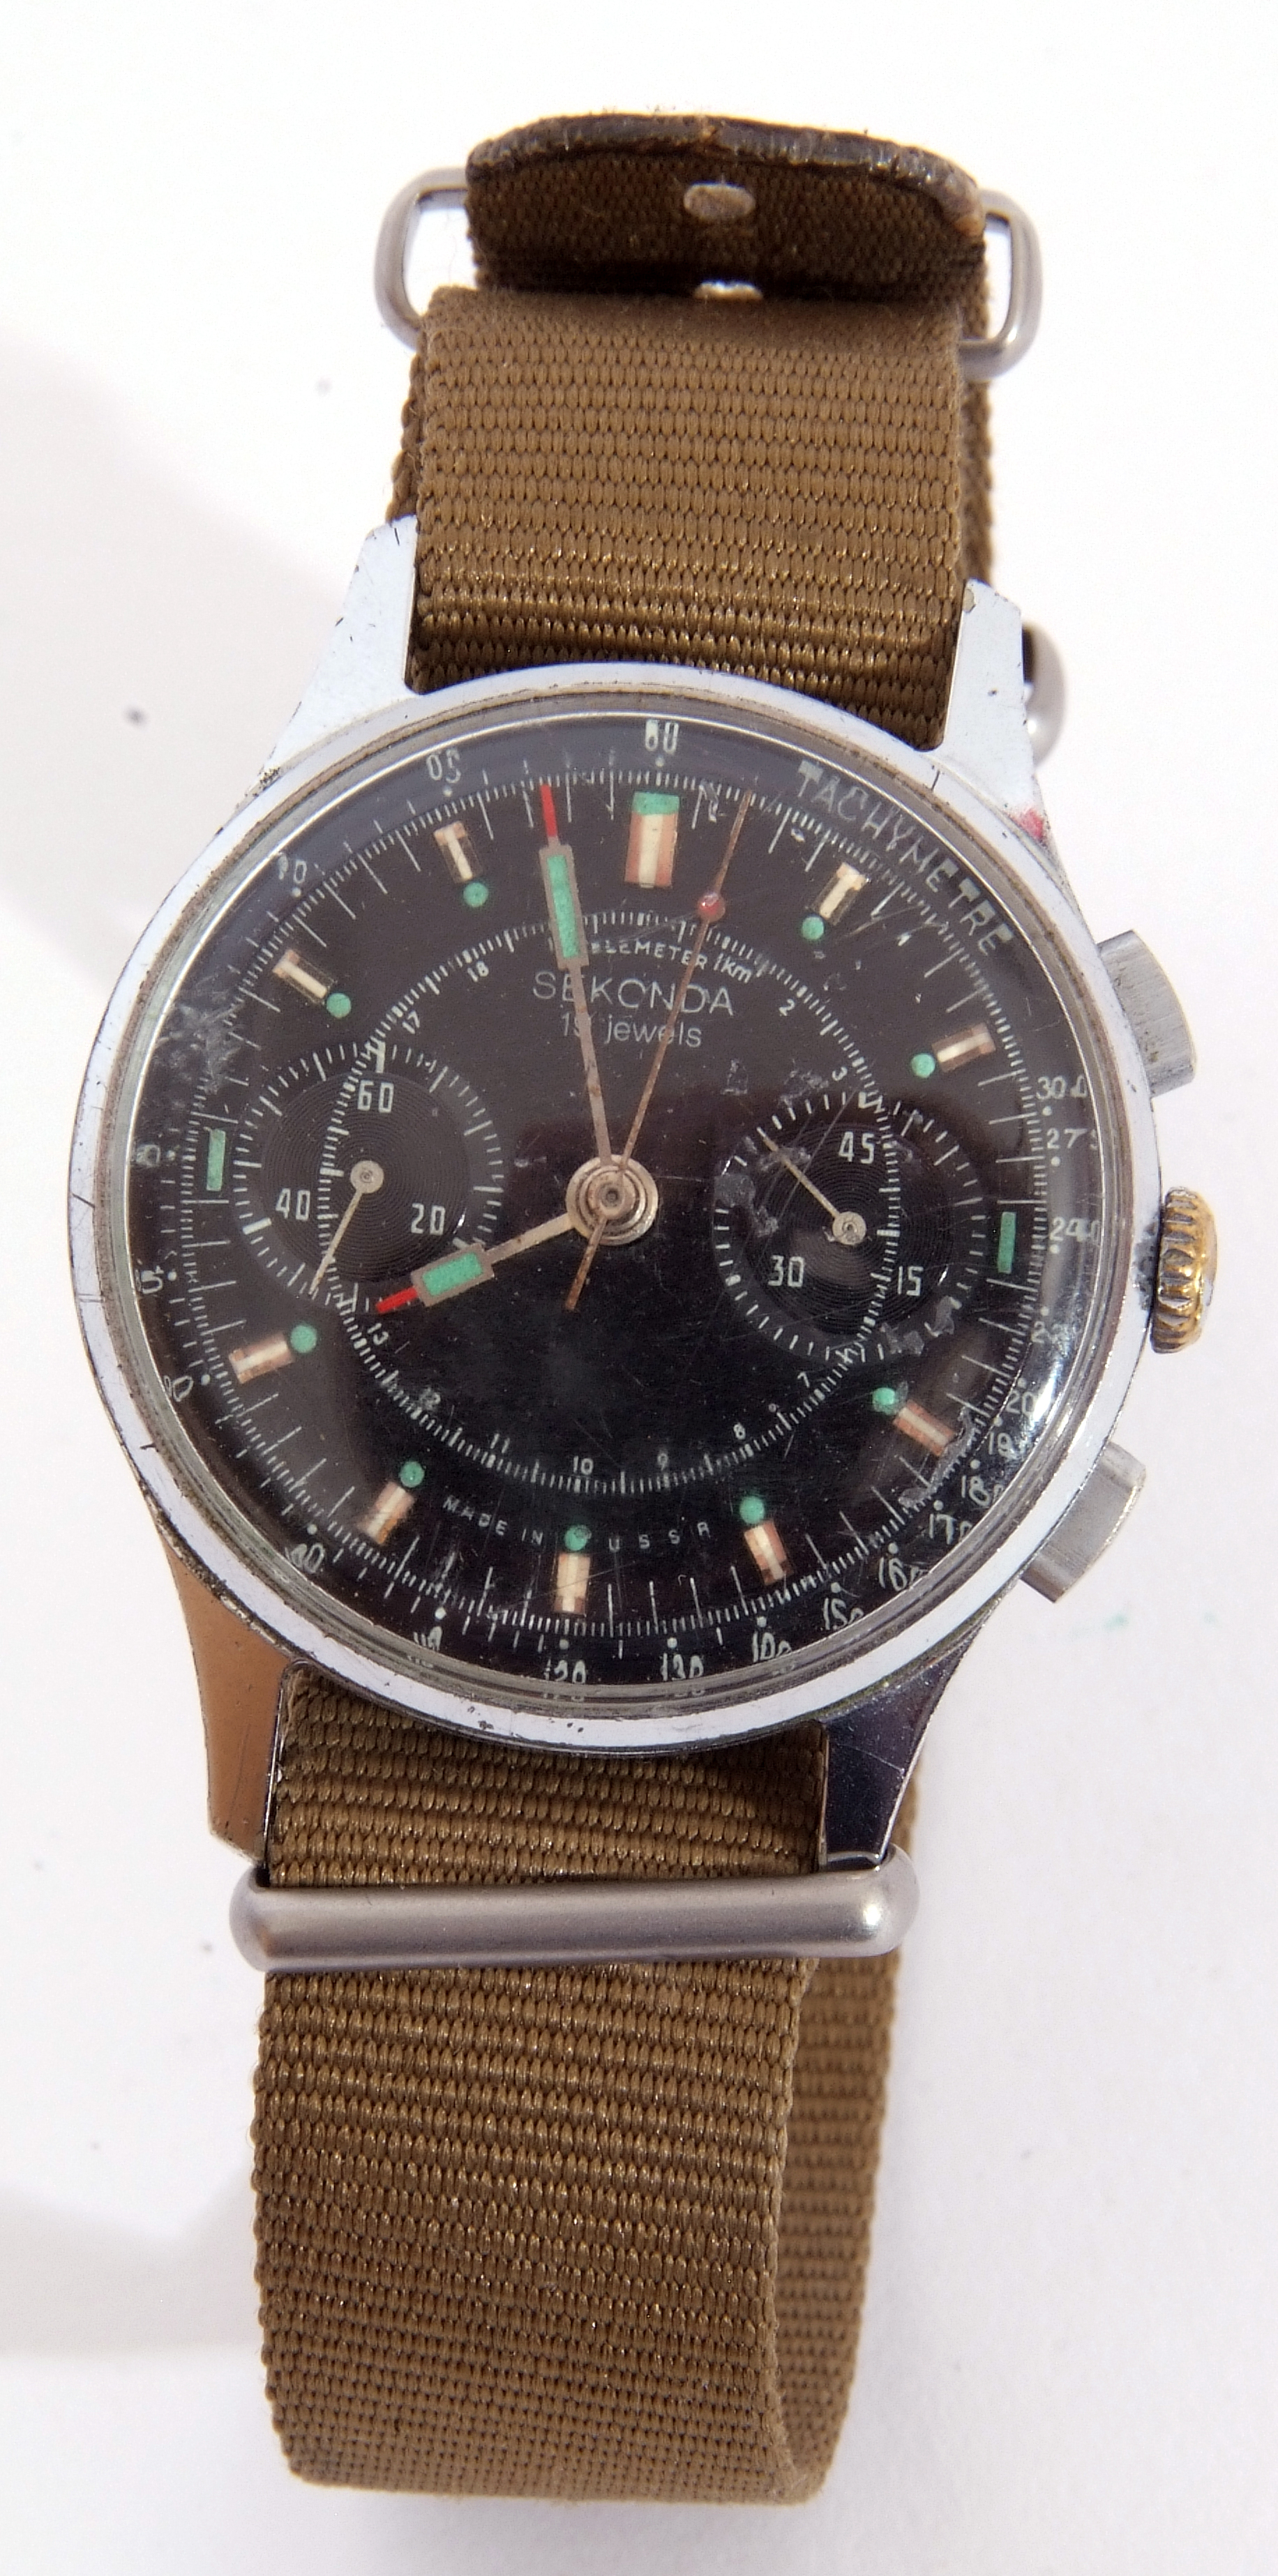 Third quarter of 20th century Sekonda centre seconds wrist chronograph watch case, stainless steel - Image 6 of 6